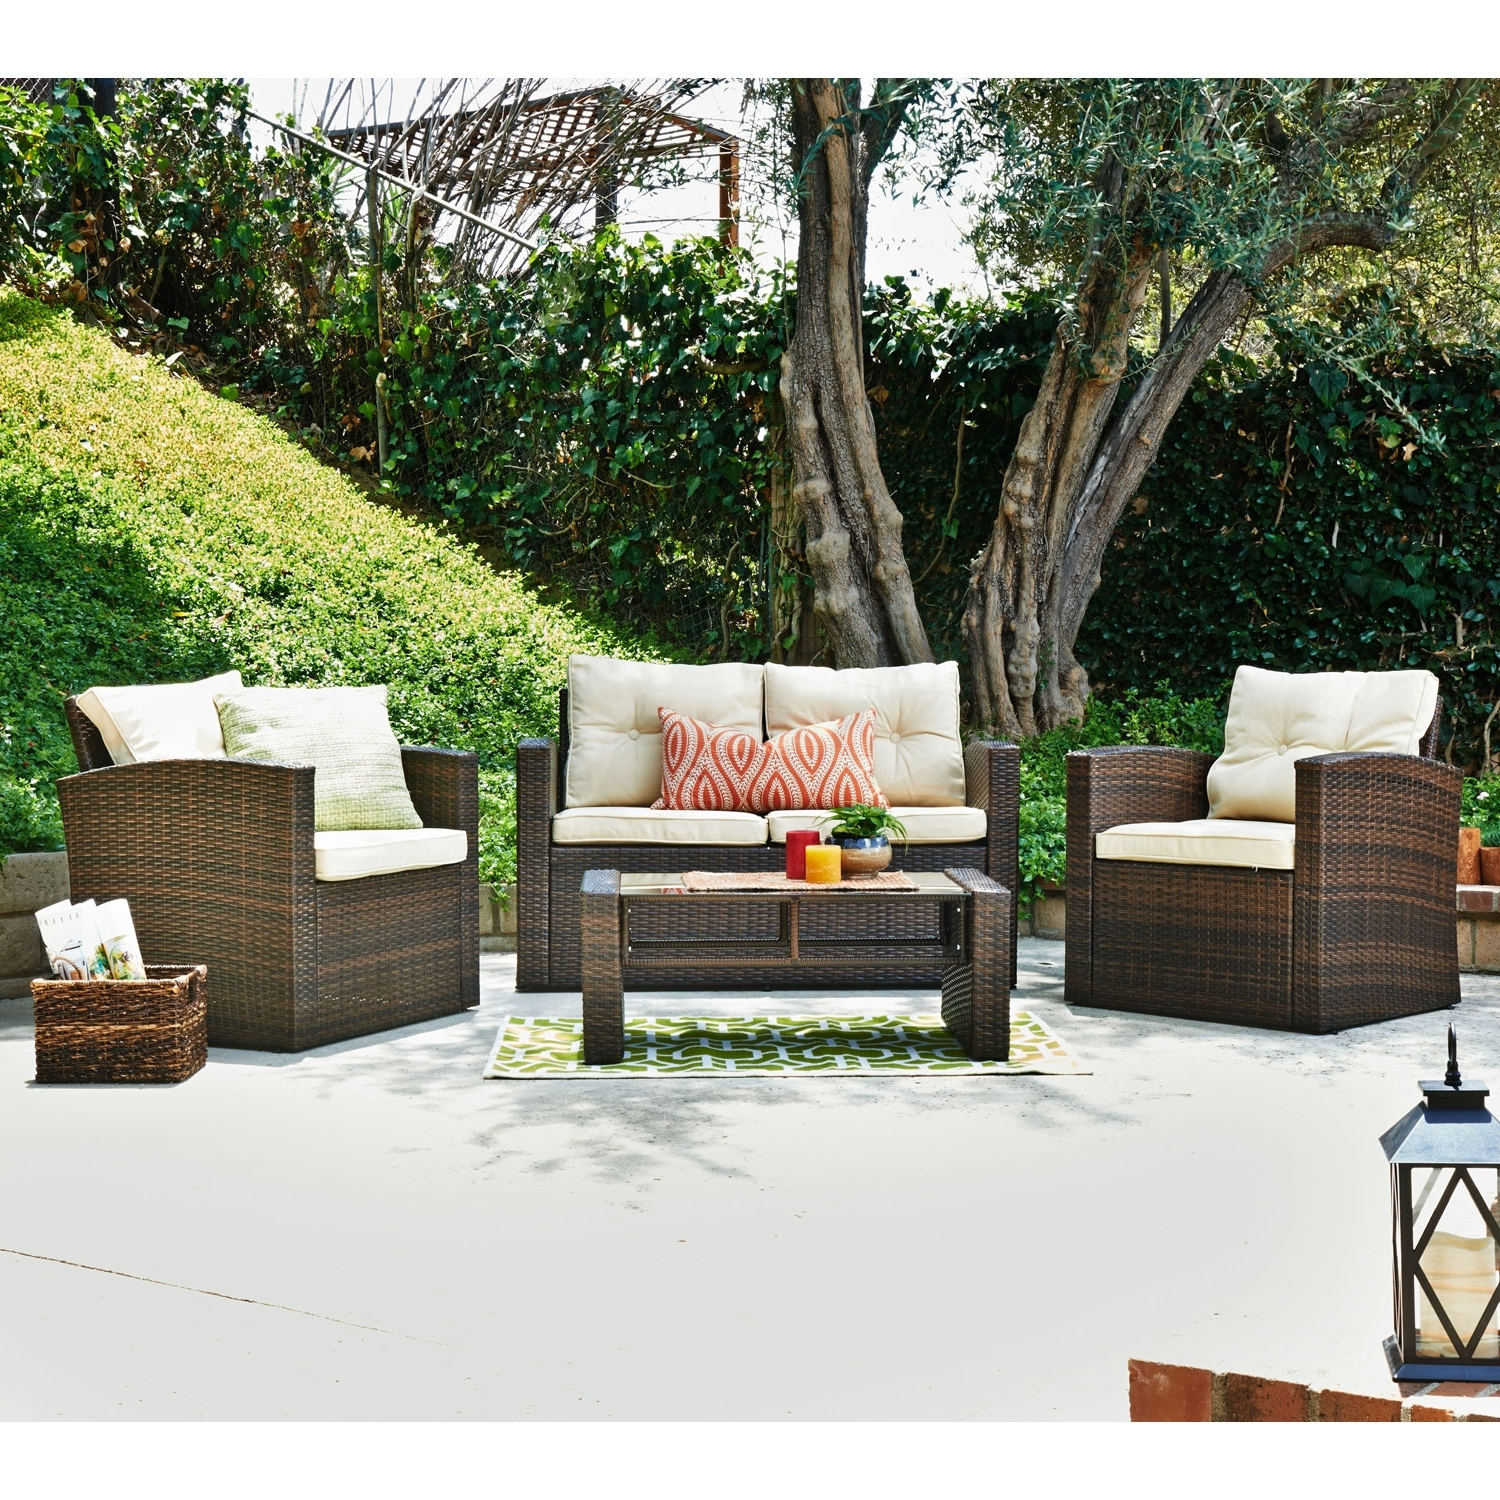 Most Recent Patio Conversation Sets At Target Pertaining To Thy Hom Roatan Tan 4 Piece Outdoor Wicker Conversation Set (View 8 of 20)